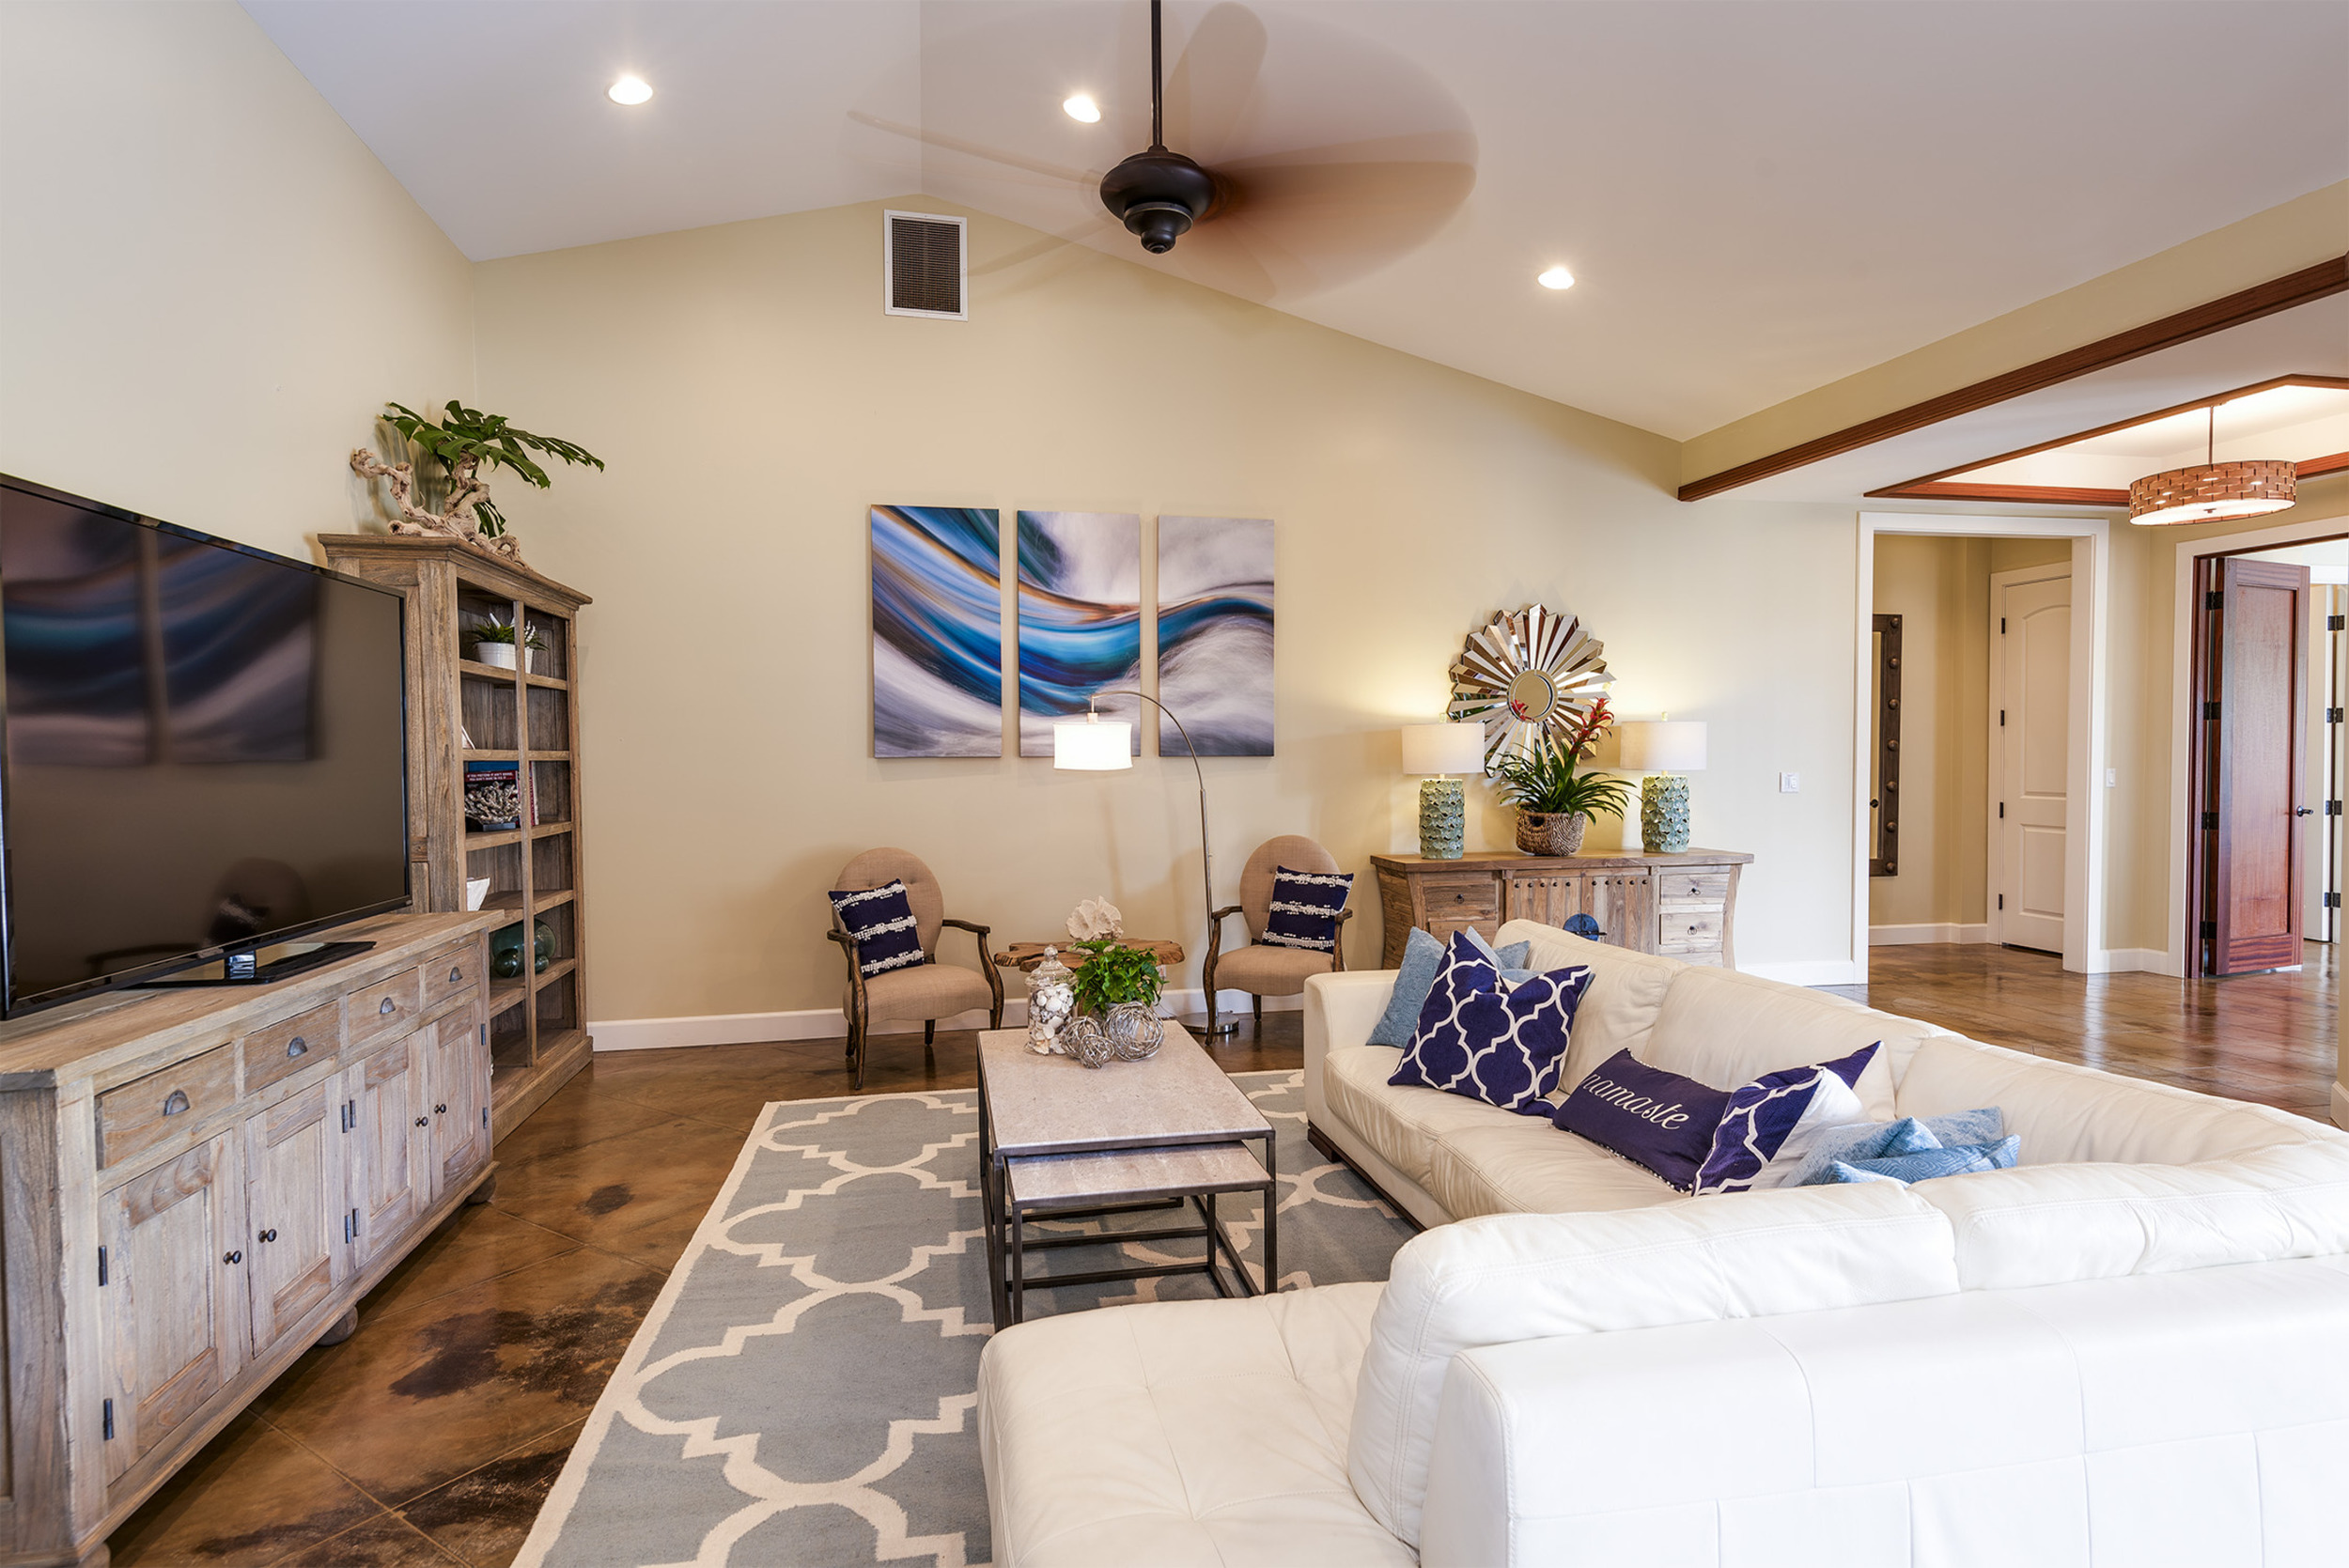 Luxury Home Staging Hawaii, Home Staging Hawaii, Inouye Interiors LLC, Best Home Stagers Hawaii, Home Stagers in Hawaii, Stagers Hawaii, Home Stager Hawaii, Luxury Home Stager Hawaii